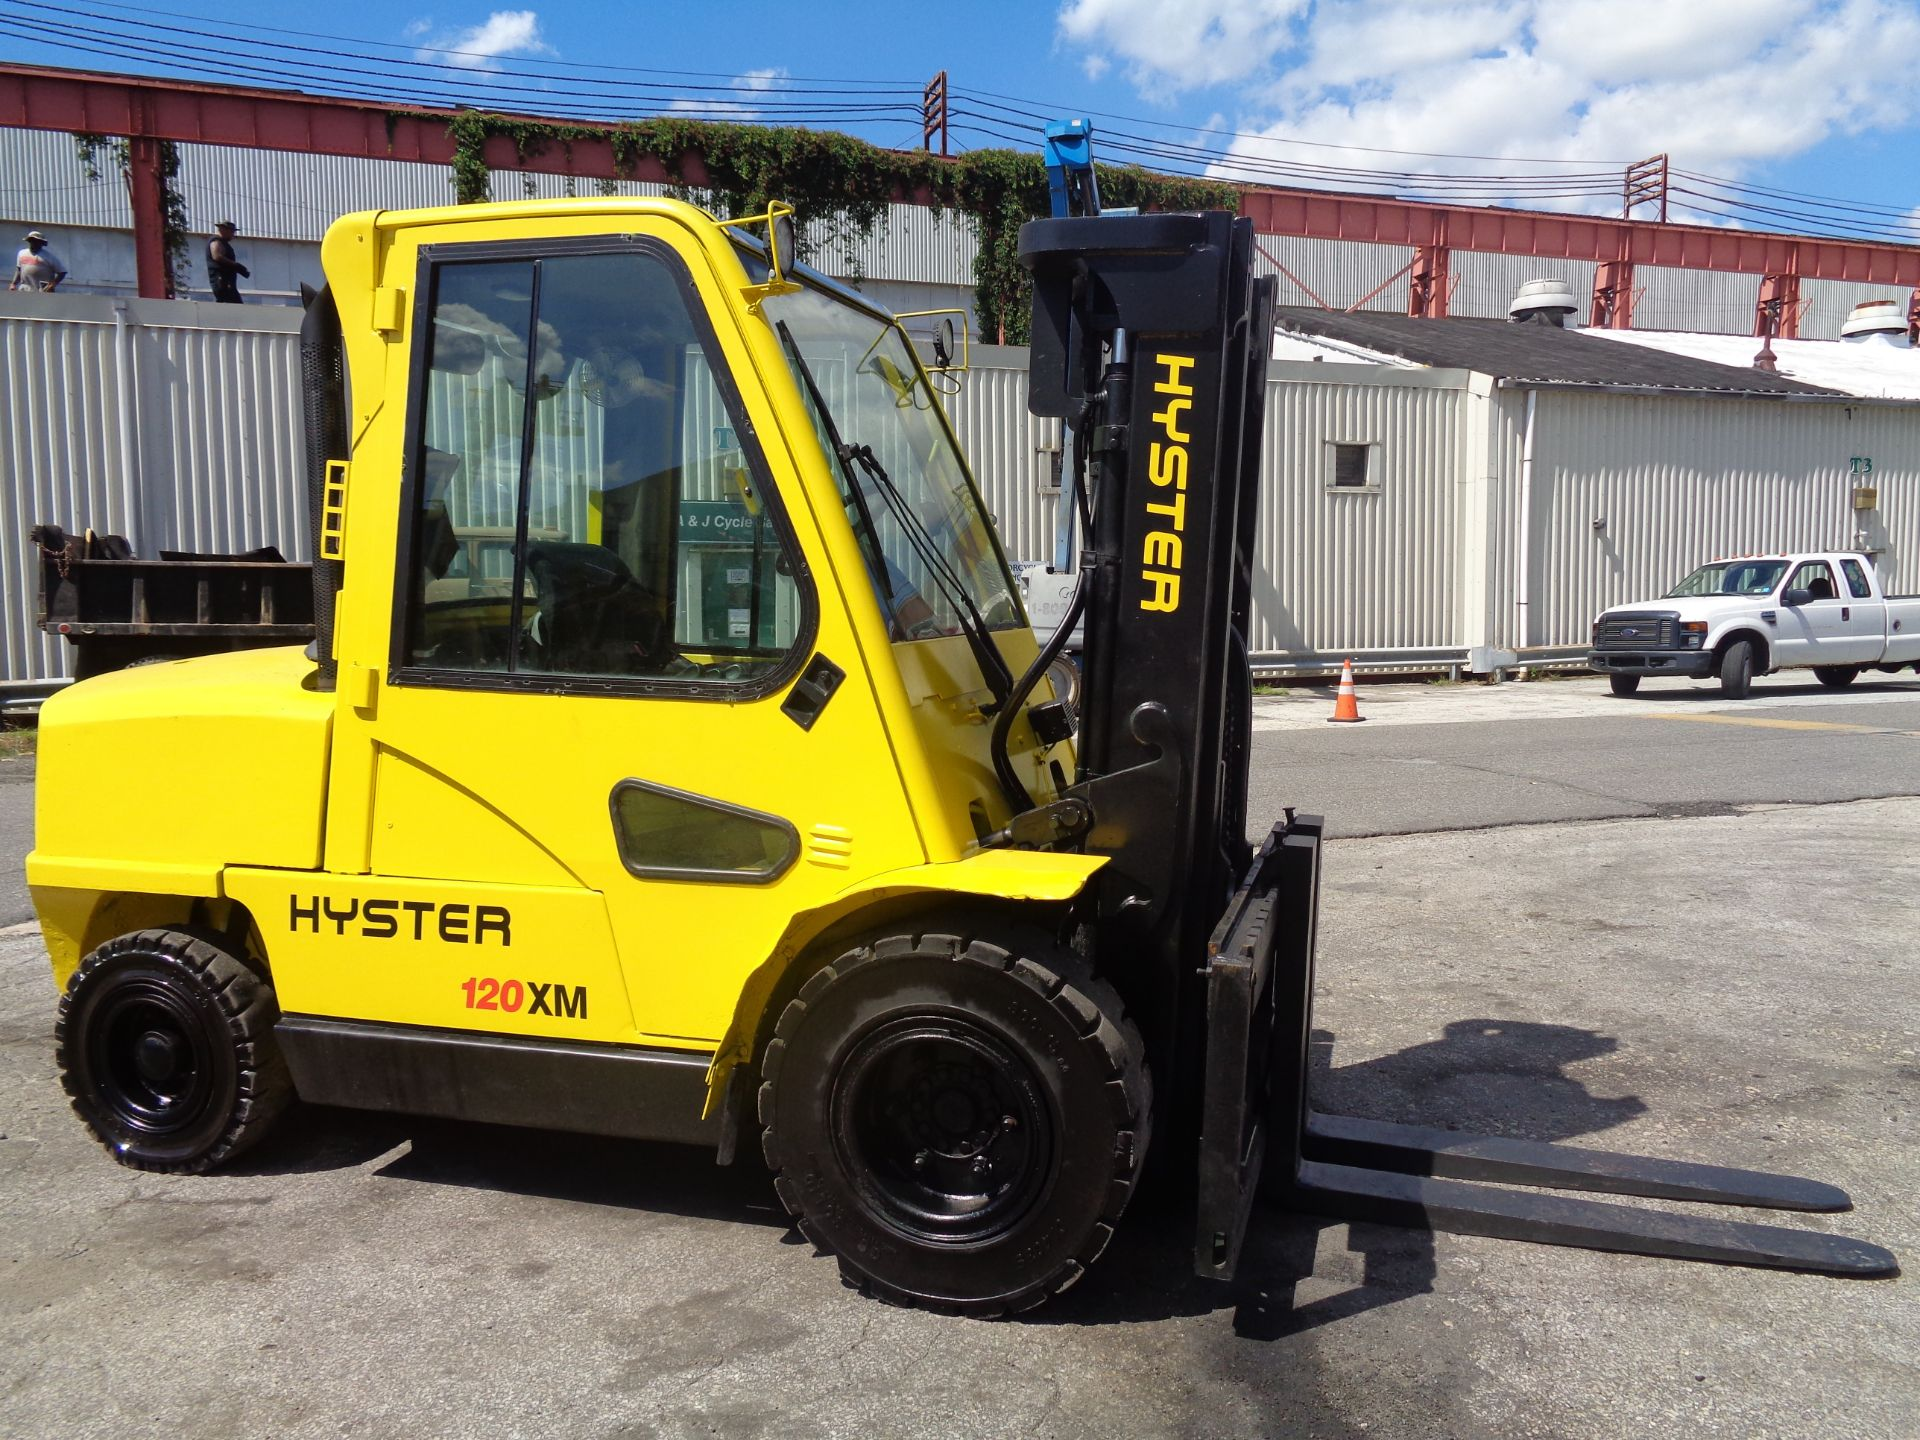 Hyster H120XL 12,000lb Forklift - Image 4 of 15